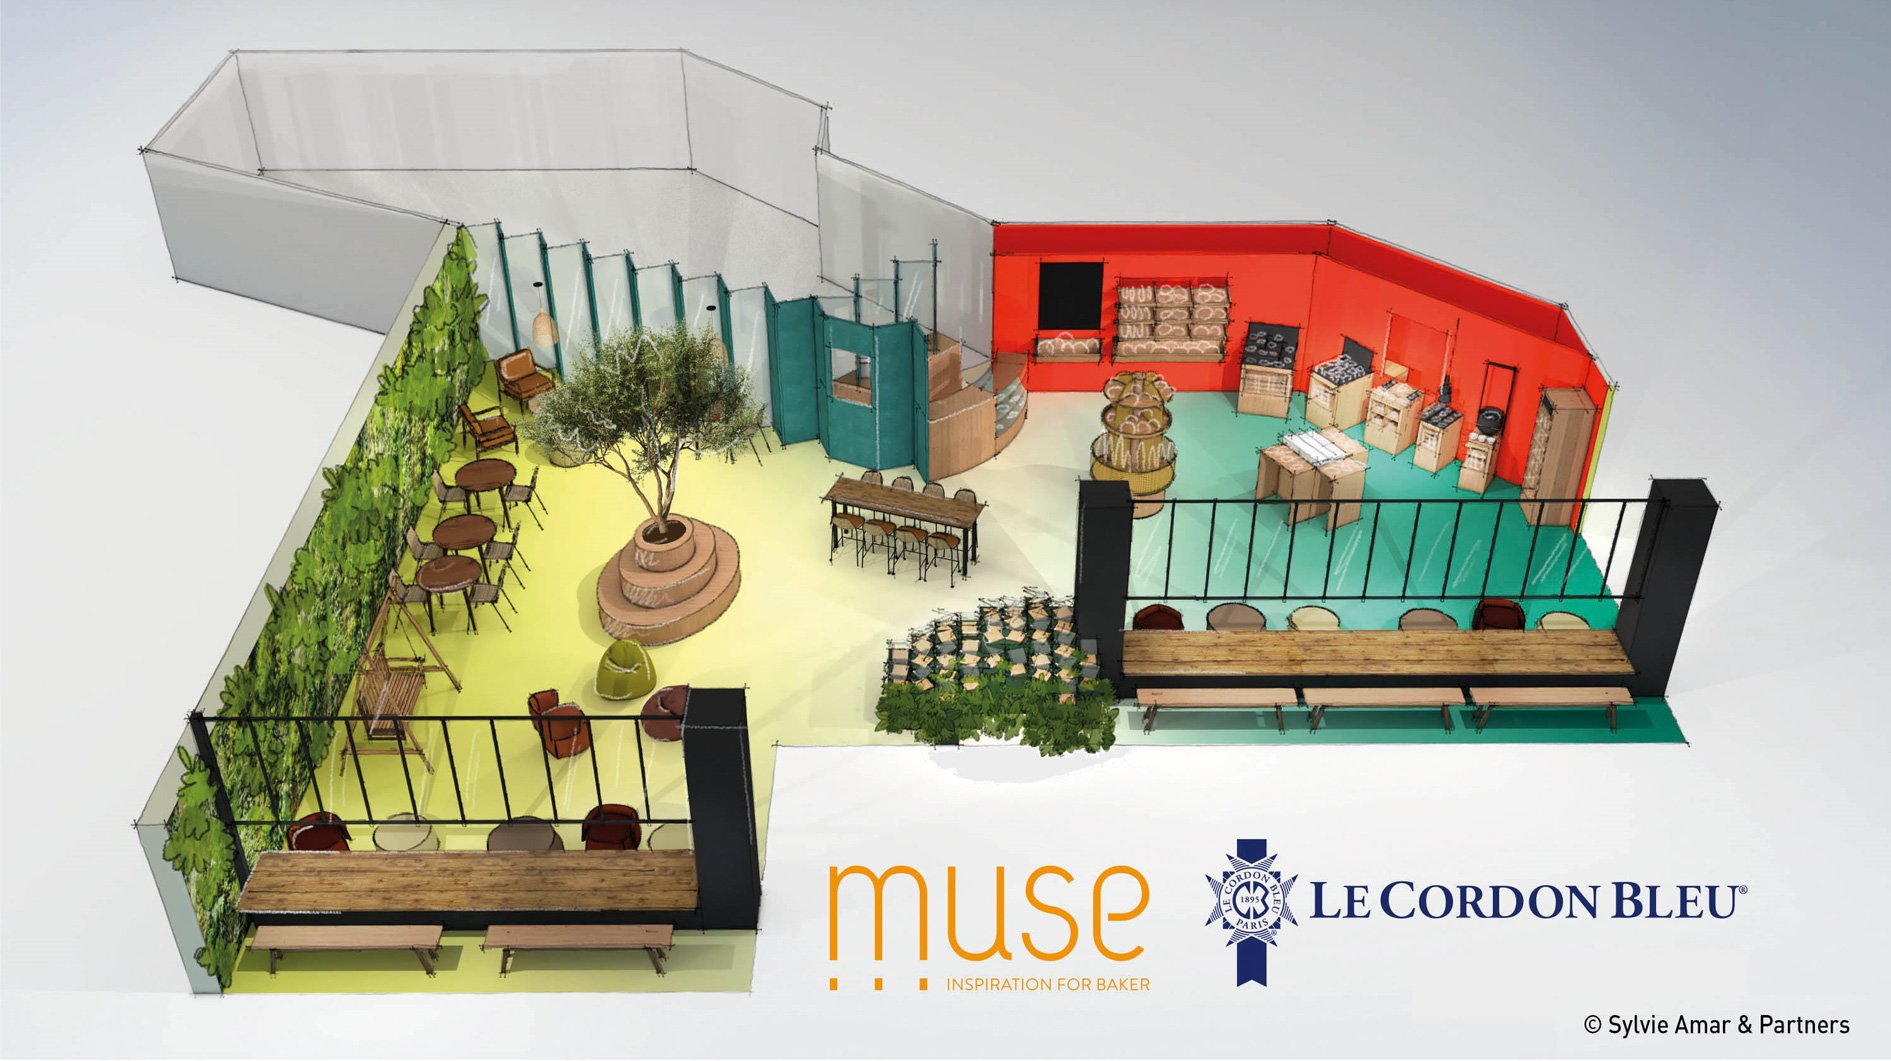 Muse Concept at Europain with Le Cordon Bleu